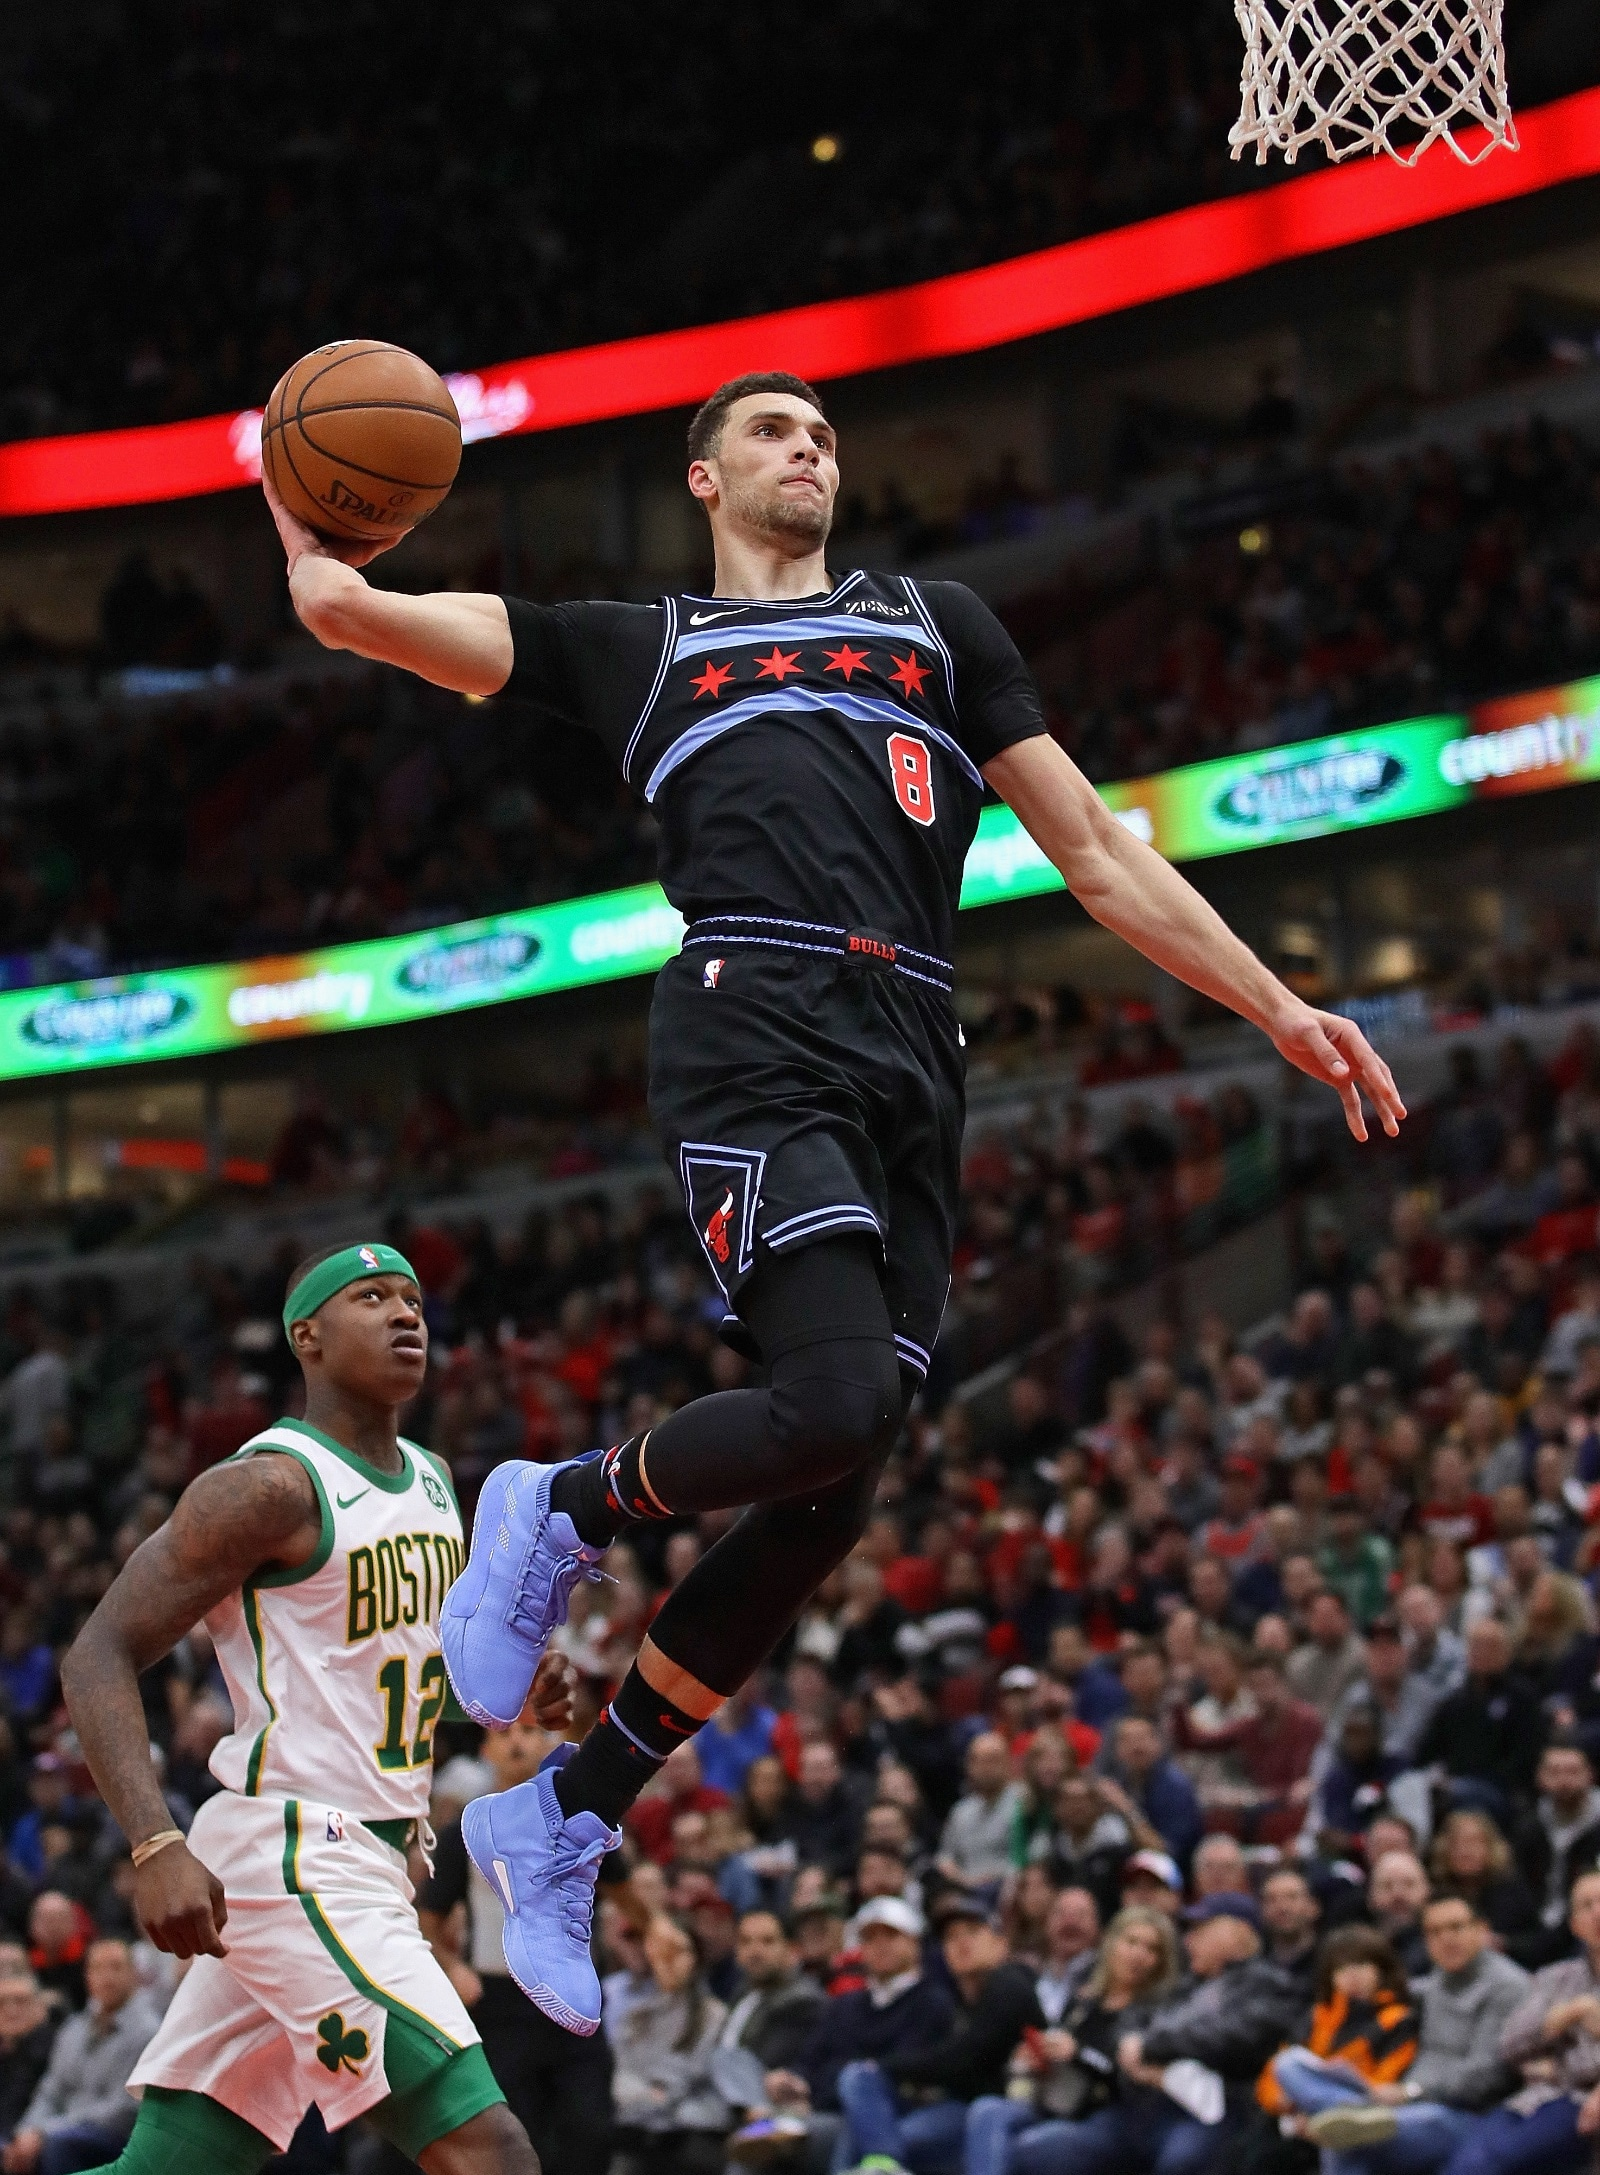 Zach LaVine gets big air for the dunk